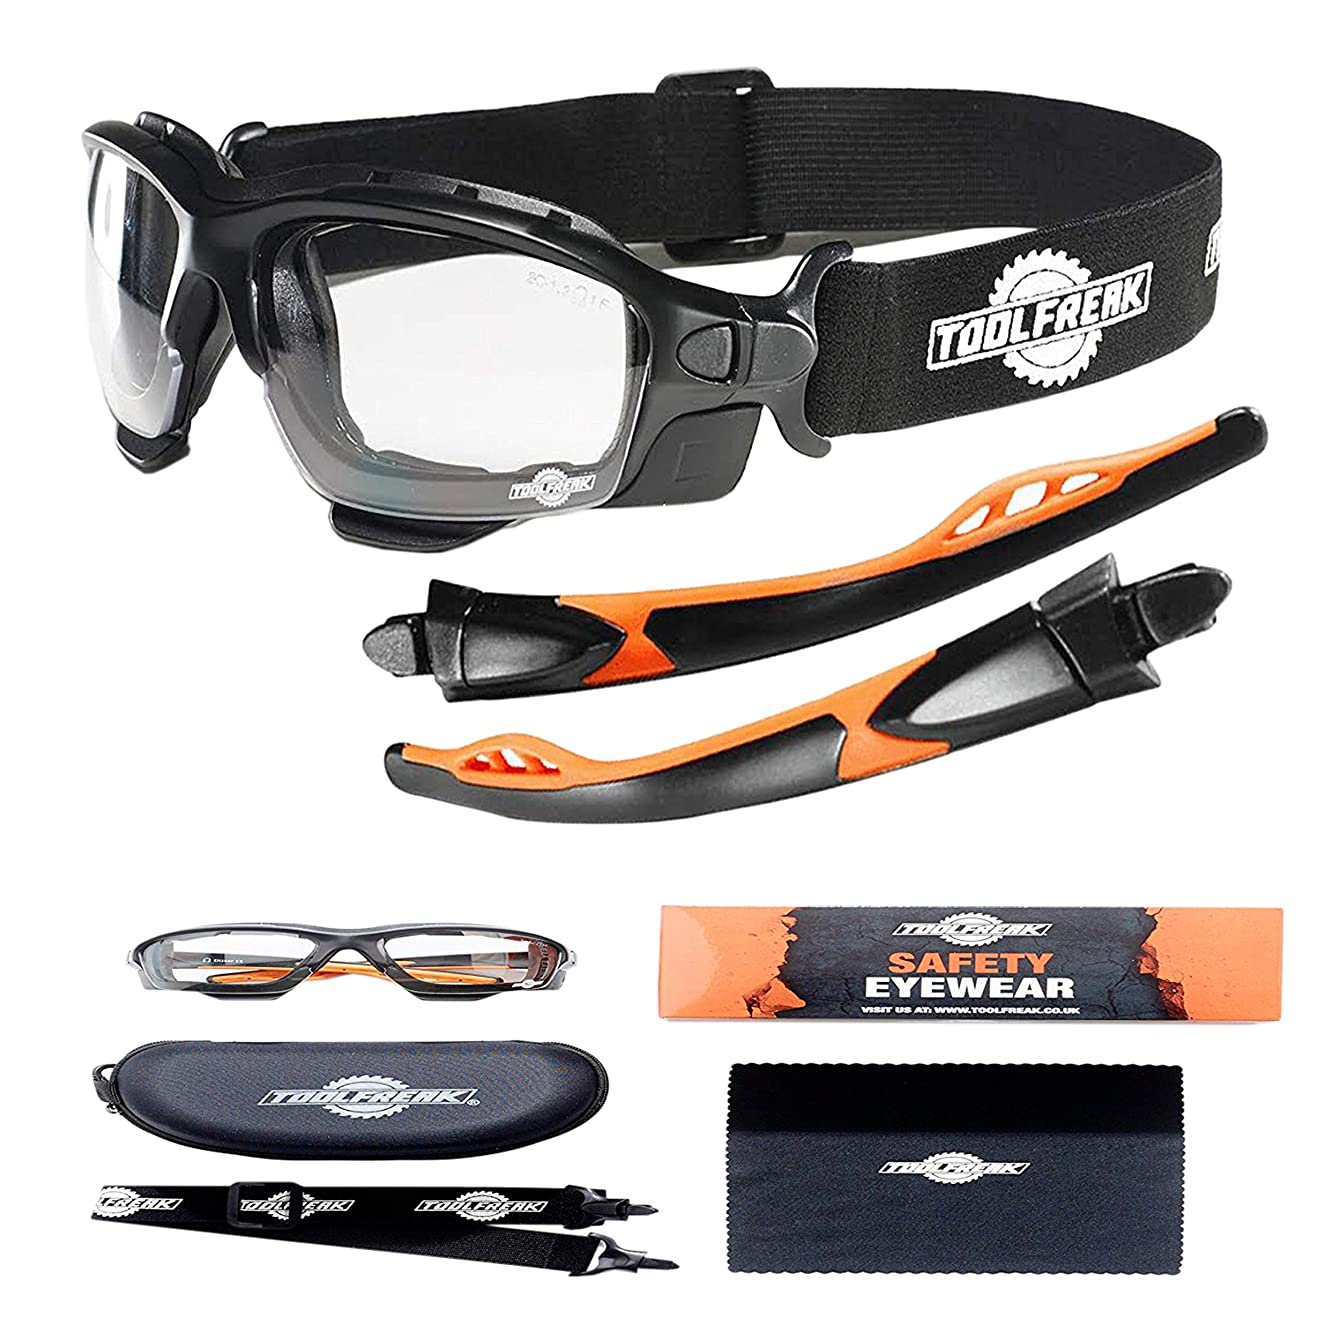 ToolFreak-Spoggles,Safety Glasses & Protective Goggles   Eyewear Foam Padded for Comfort and Better Protection, ANSI Z87 Rated, Clear Lens with UV & Impact Protection